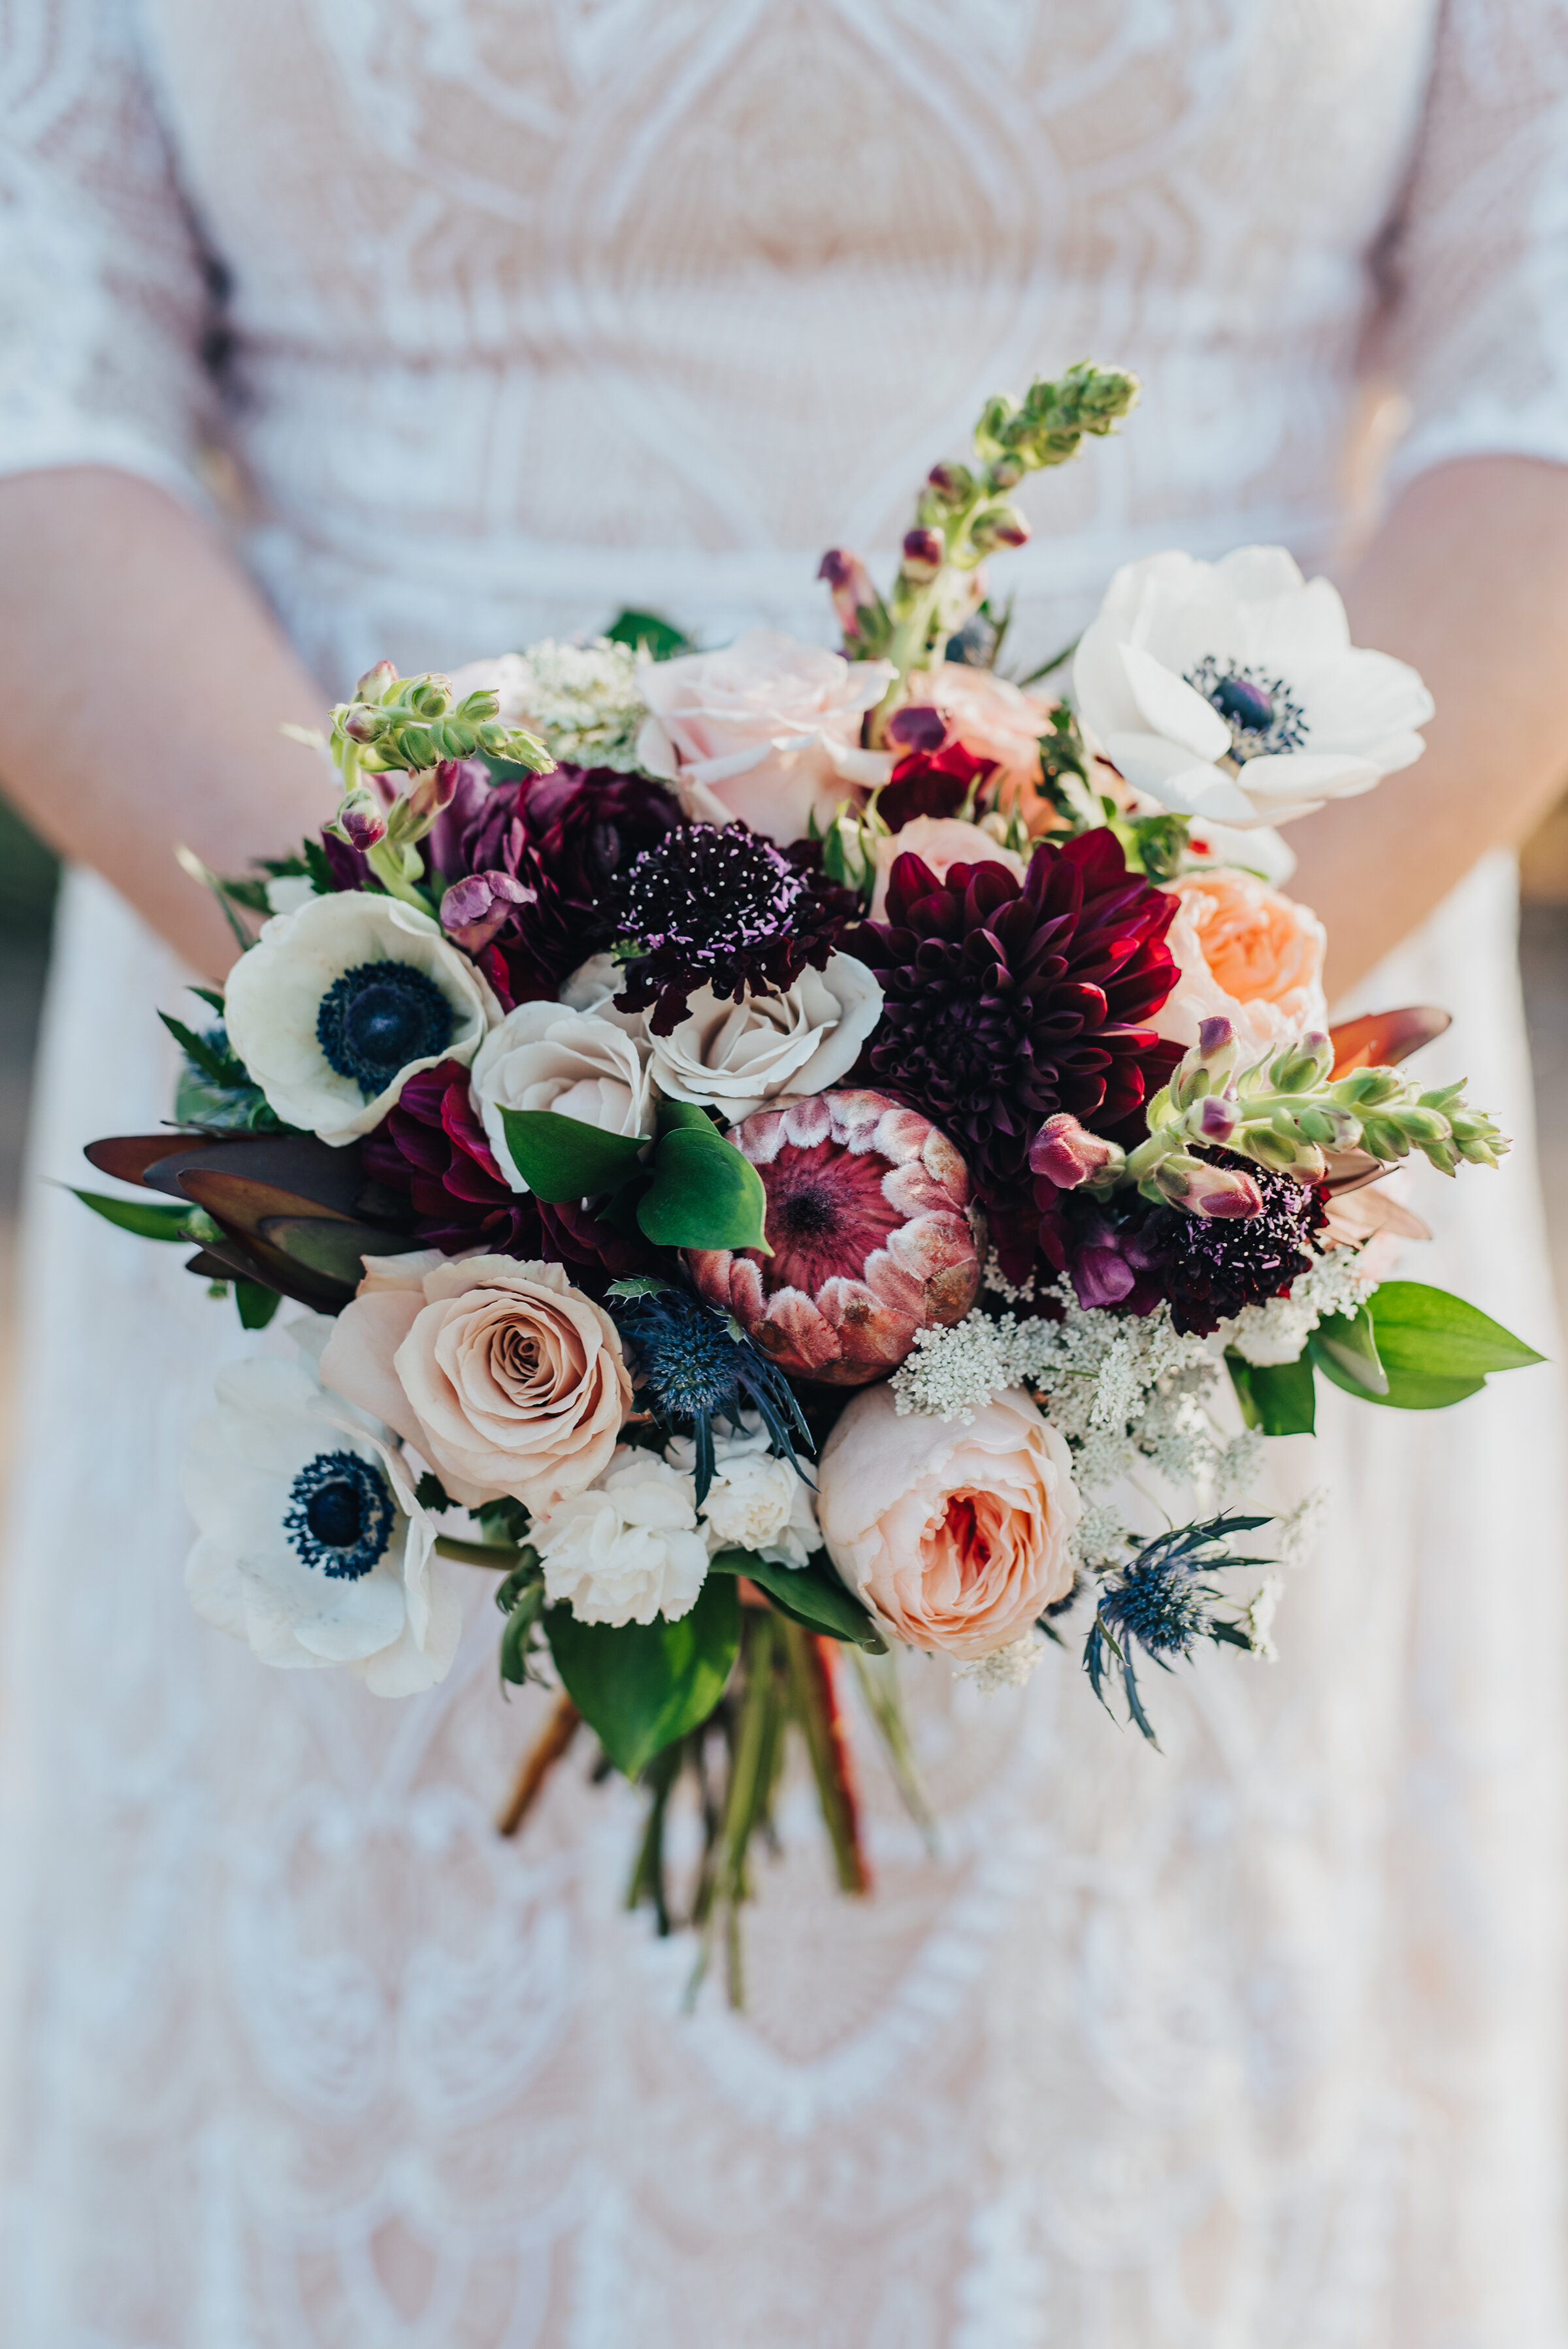 Stunningly detailed shot of the gorgeous brides flower bouquet in Logan, Utah by Kristi Alyse Photography. Brides bouquet of colorful flowers inspo wedding day floral arrangement lace wedding dress meaningful details unique photography northern Logan Utah wedding day bridals #weddinginspo #loganutah #brideandgroom #utahbride#utahweddingphotographer #meaningfulmoment #weddingphotography #northernutahwedding #weddinghairstyles #weddingday #bridals